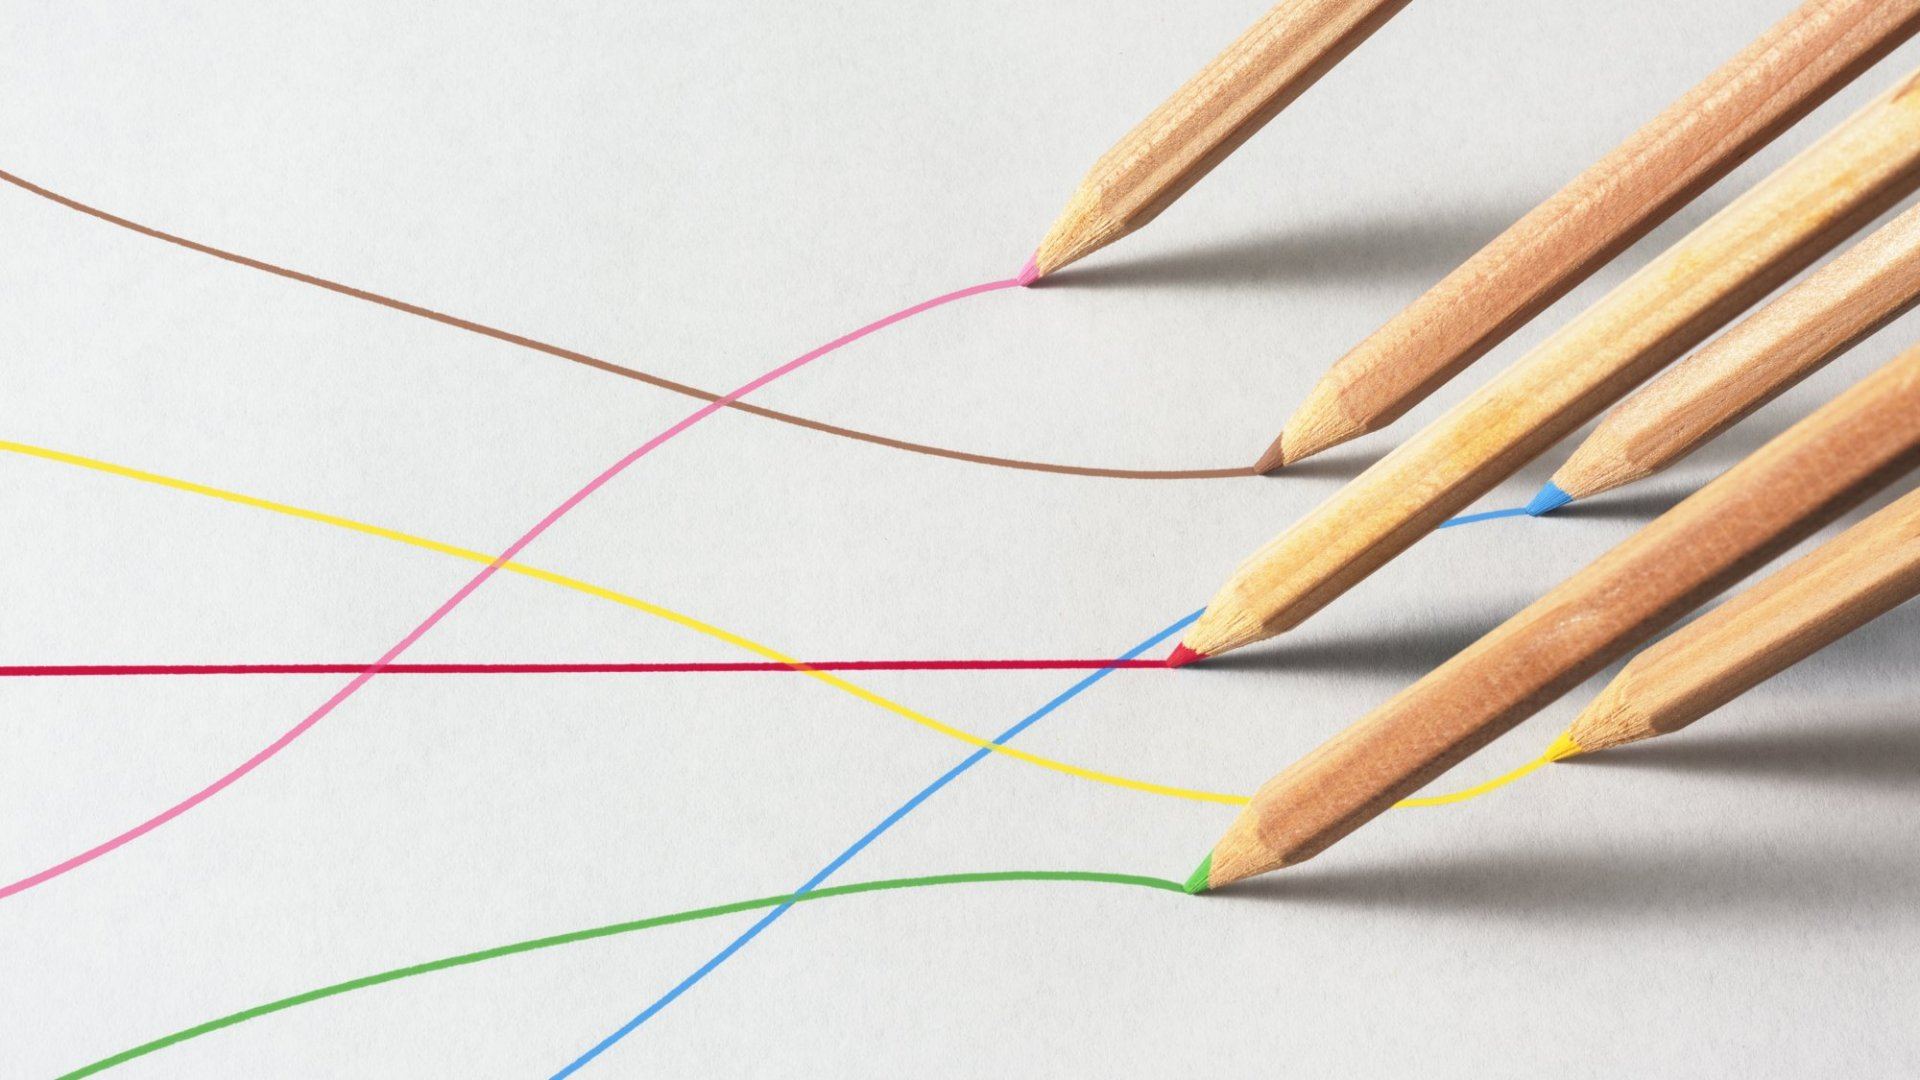 The 6 Resources That Lead to Creativity, According to Research